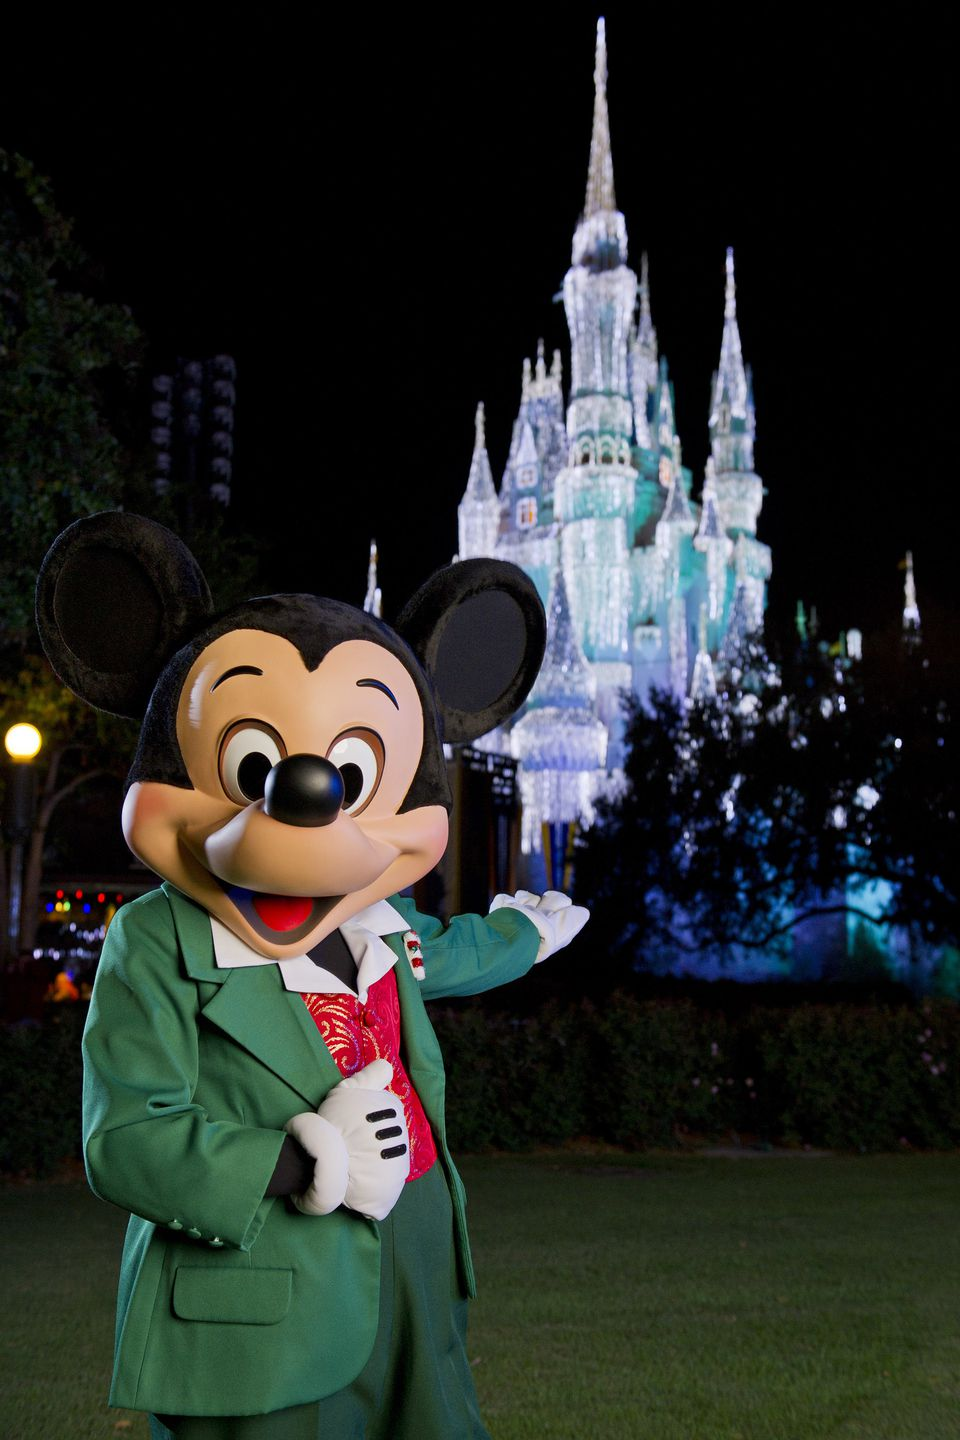 Mickey Mouse dressed for the holidays in front of lighted Cinderella's Castle at Disney's Magic Kingdom.